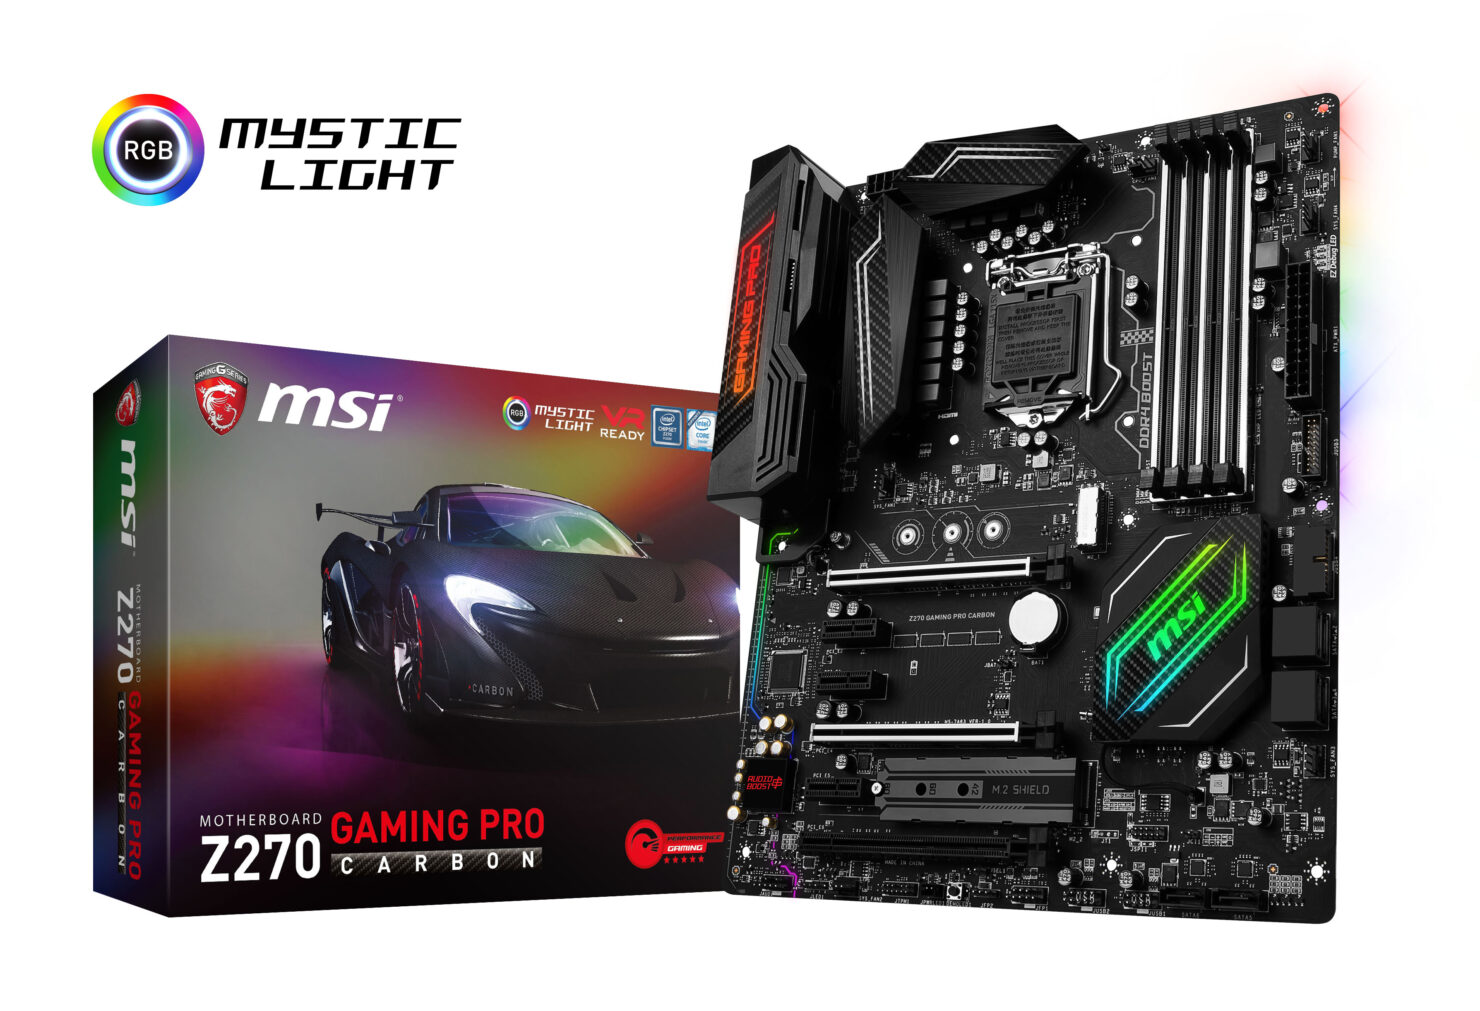 msi-z270_gaming_pro_carbon-product_pictures-box